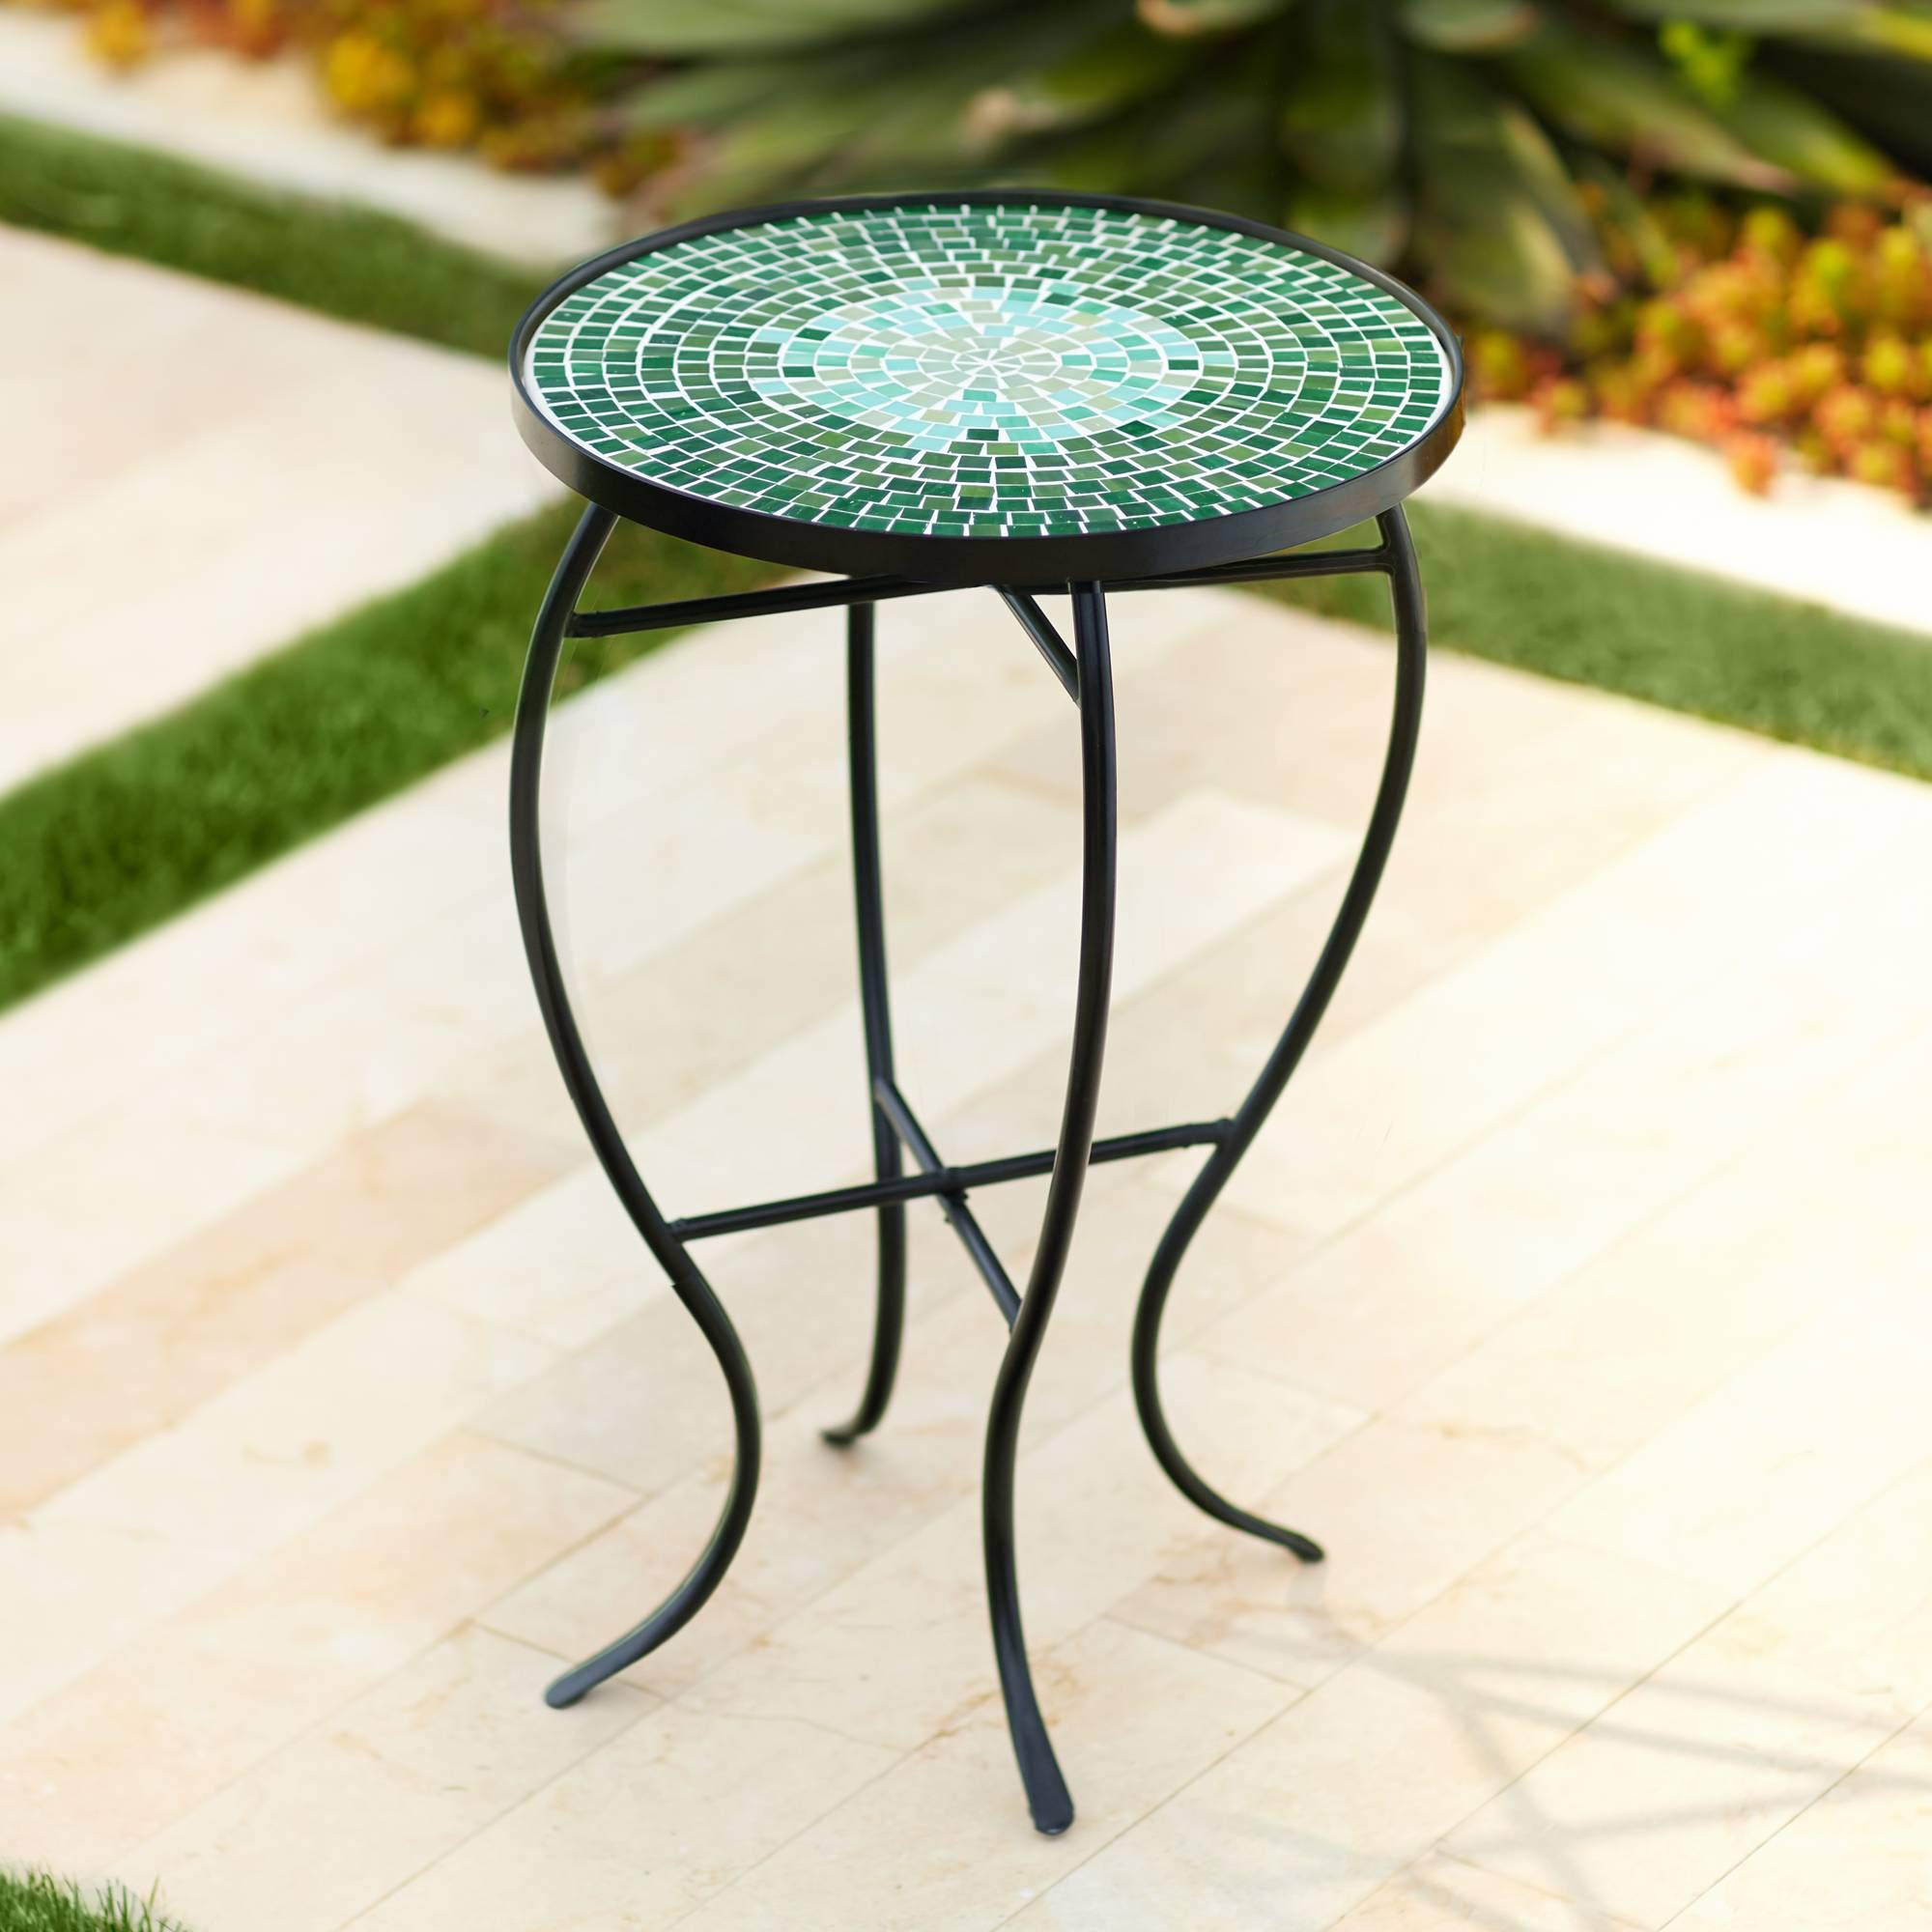 Teal Island Designs Bella Green Mosaic Outdoor Accent Table by Teal Island Designs